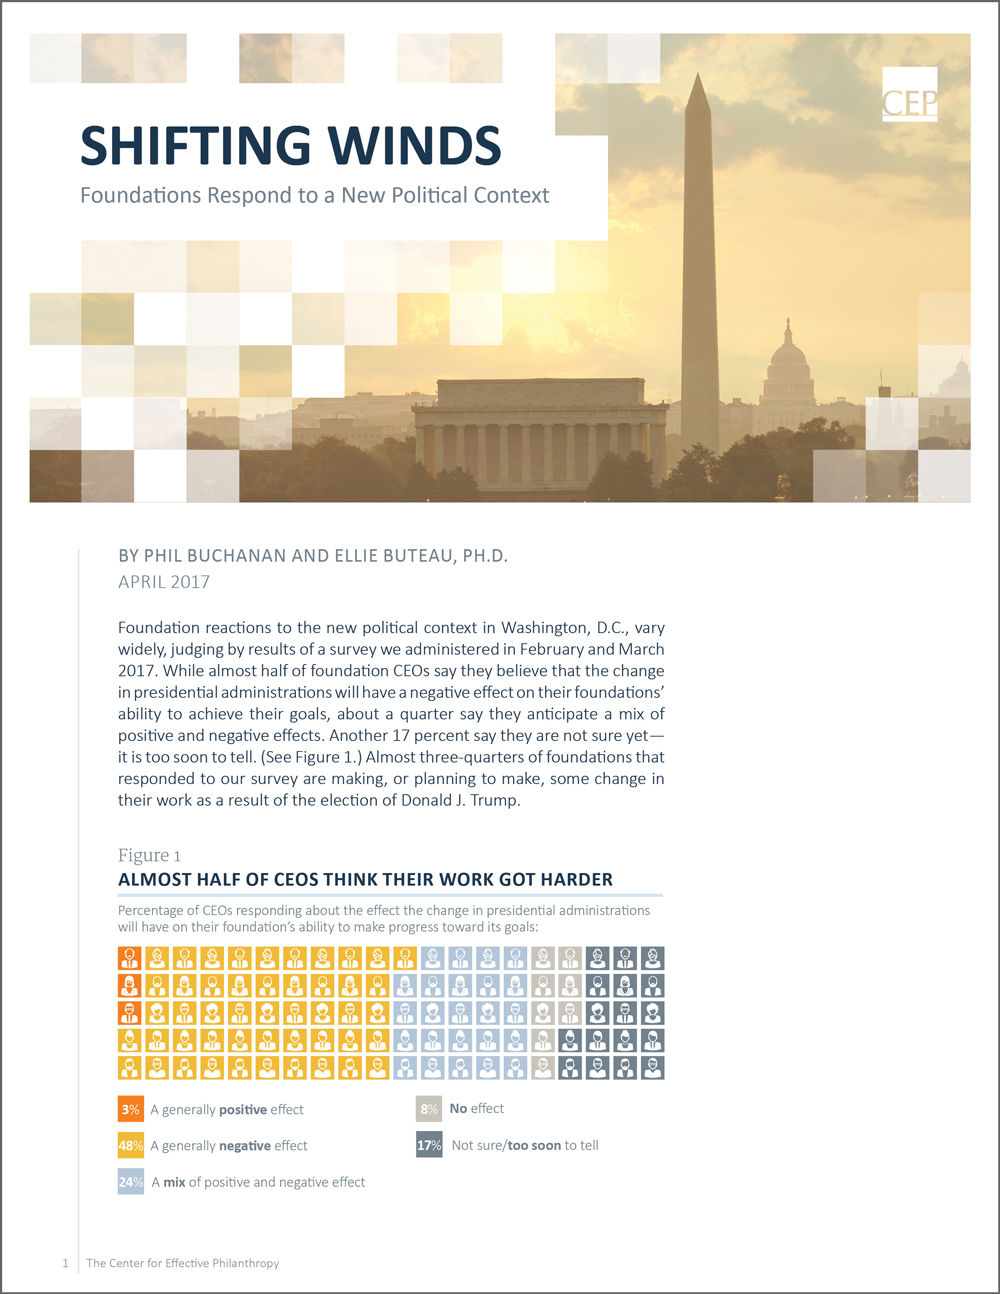 Shifting Winds: Foundations Respond to a New Political Context